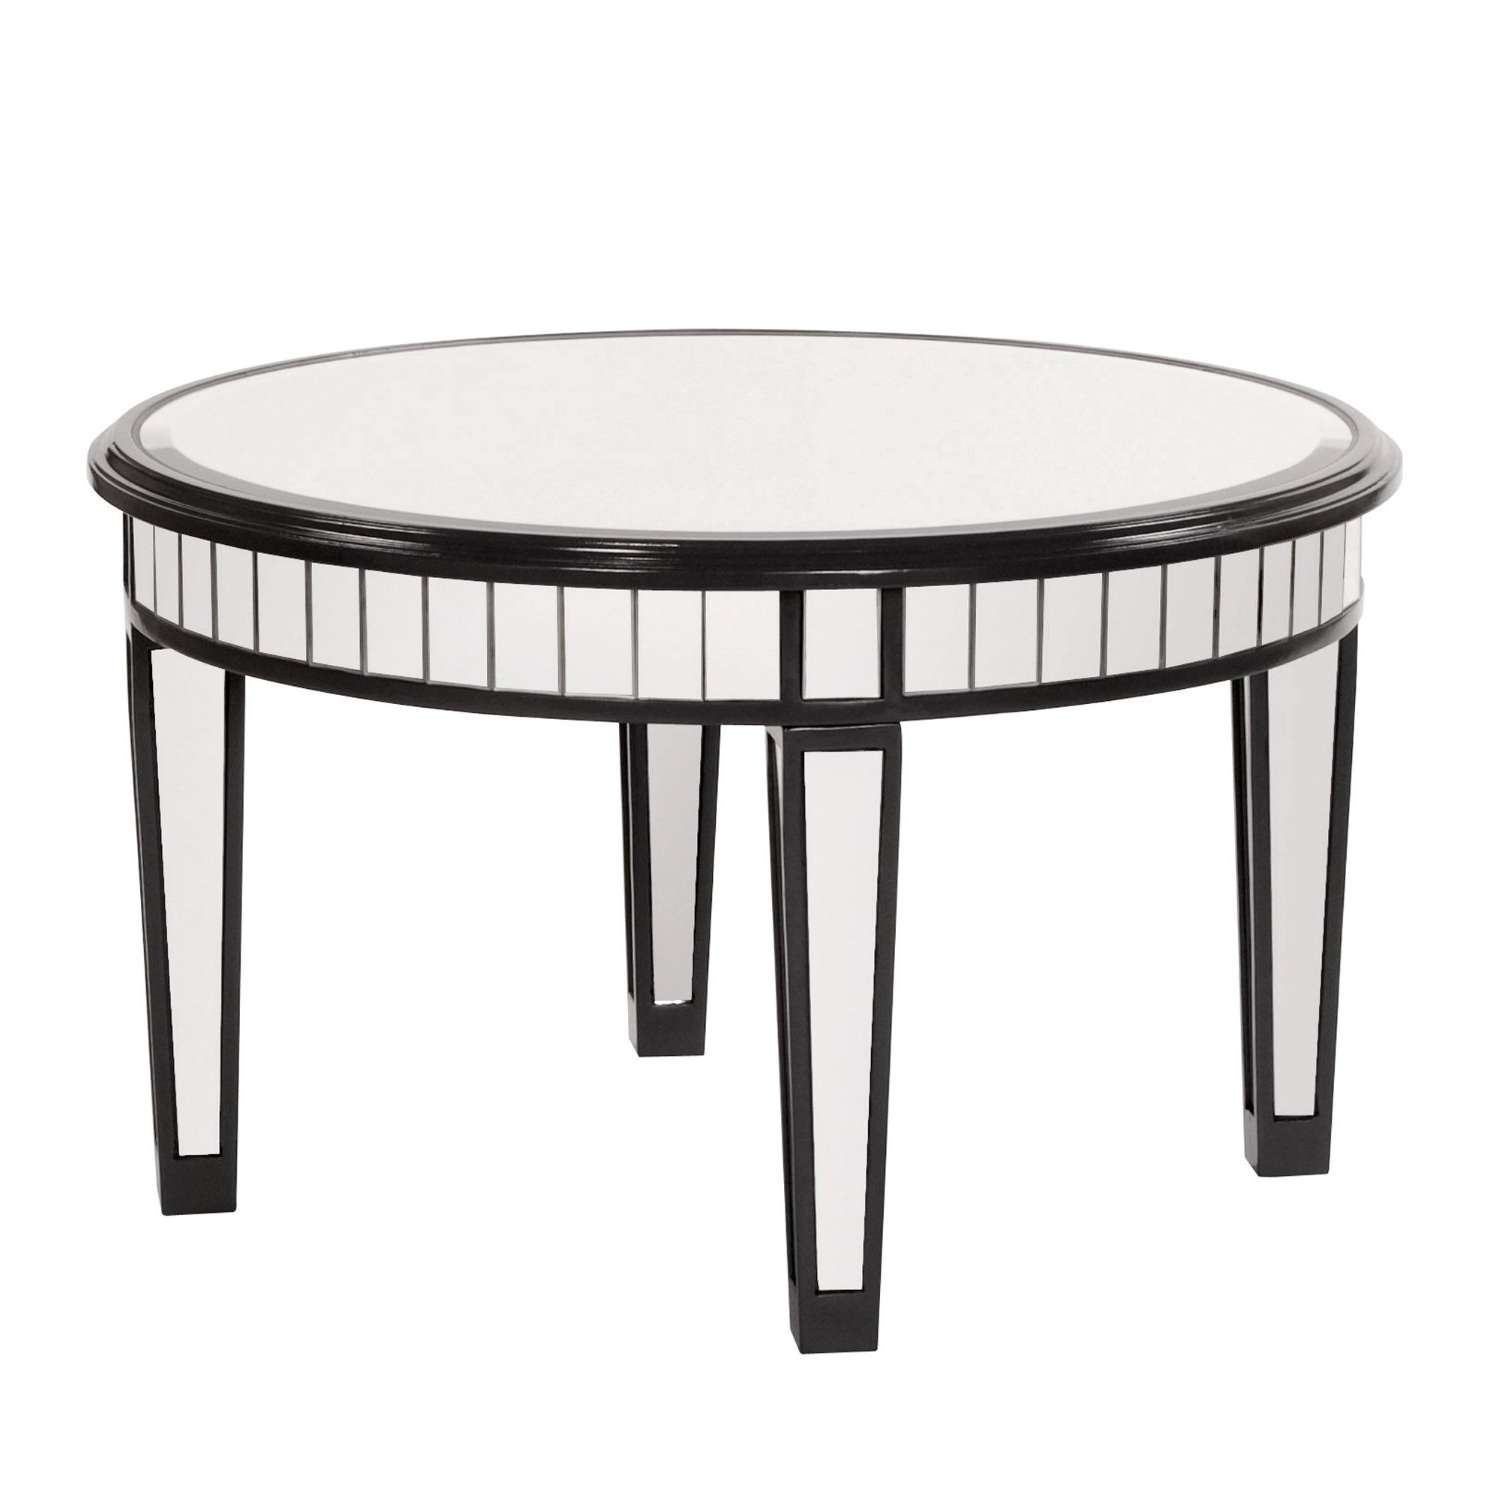 Preferred Small Mirrored Coffee Tables For Ideas: Mesmerizing Mirrored Coffee Table With Glass And Wood (View 15 of 20)